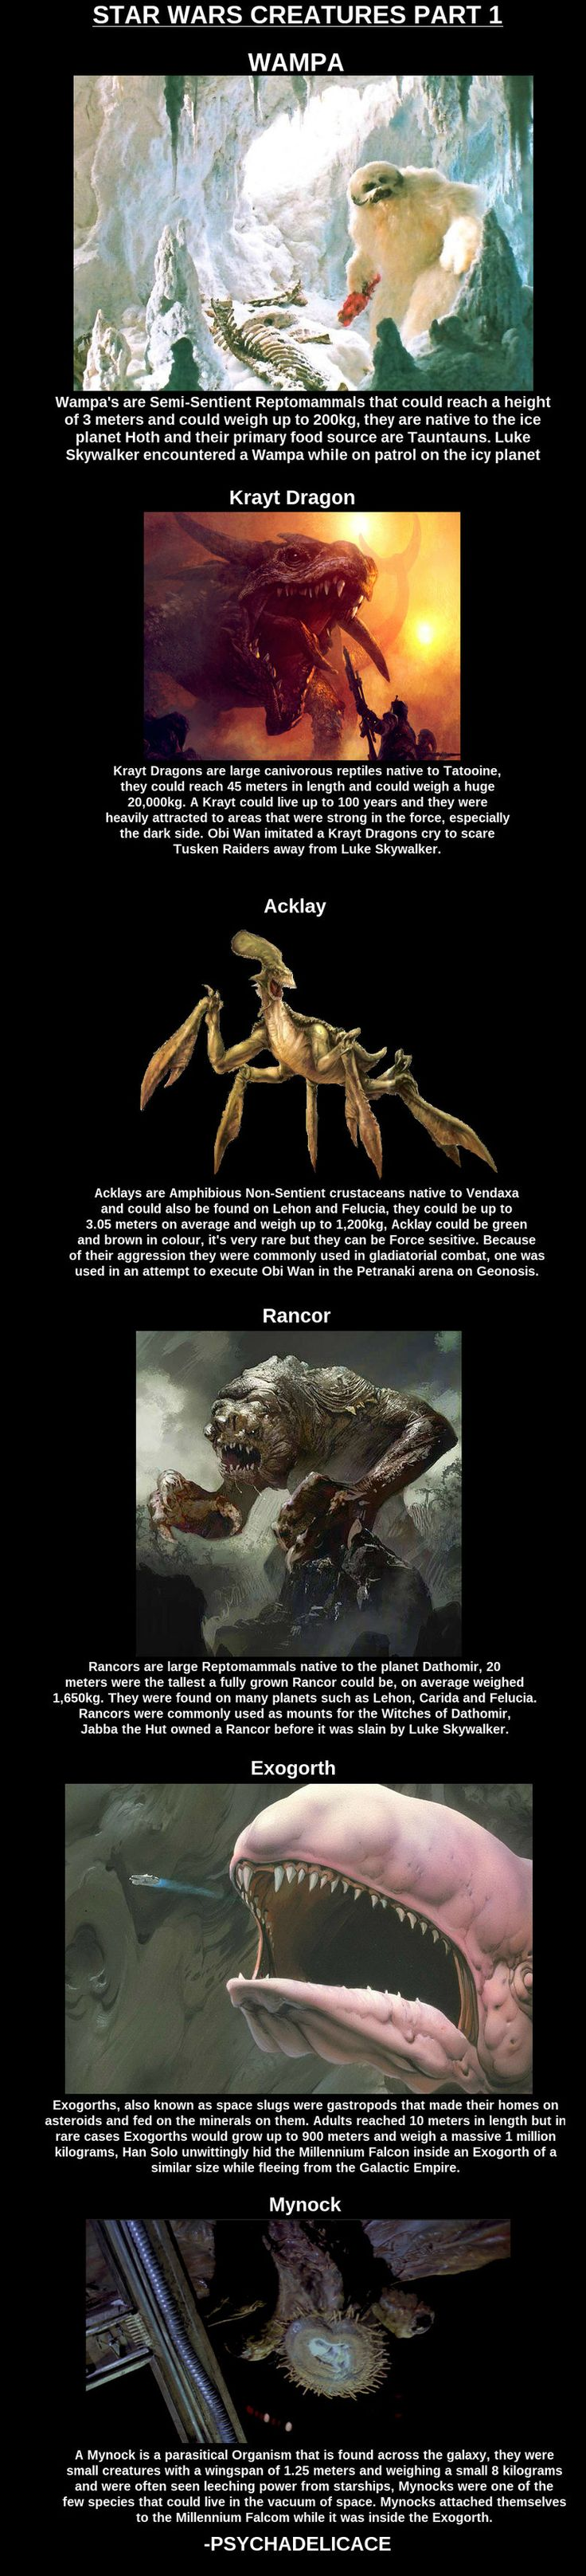 Star Wars Creatures  // funny pictures - funny photos - funny images - funny pics - funny quotes - #lol #humor #funnypictures